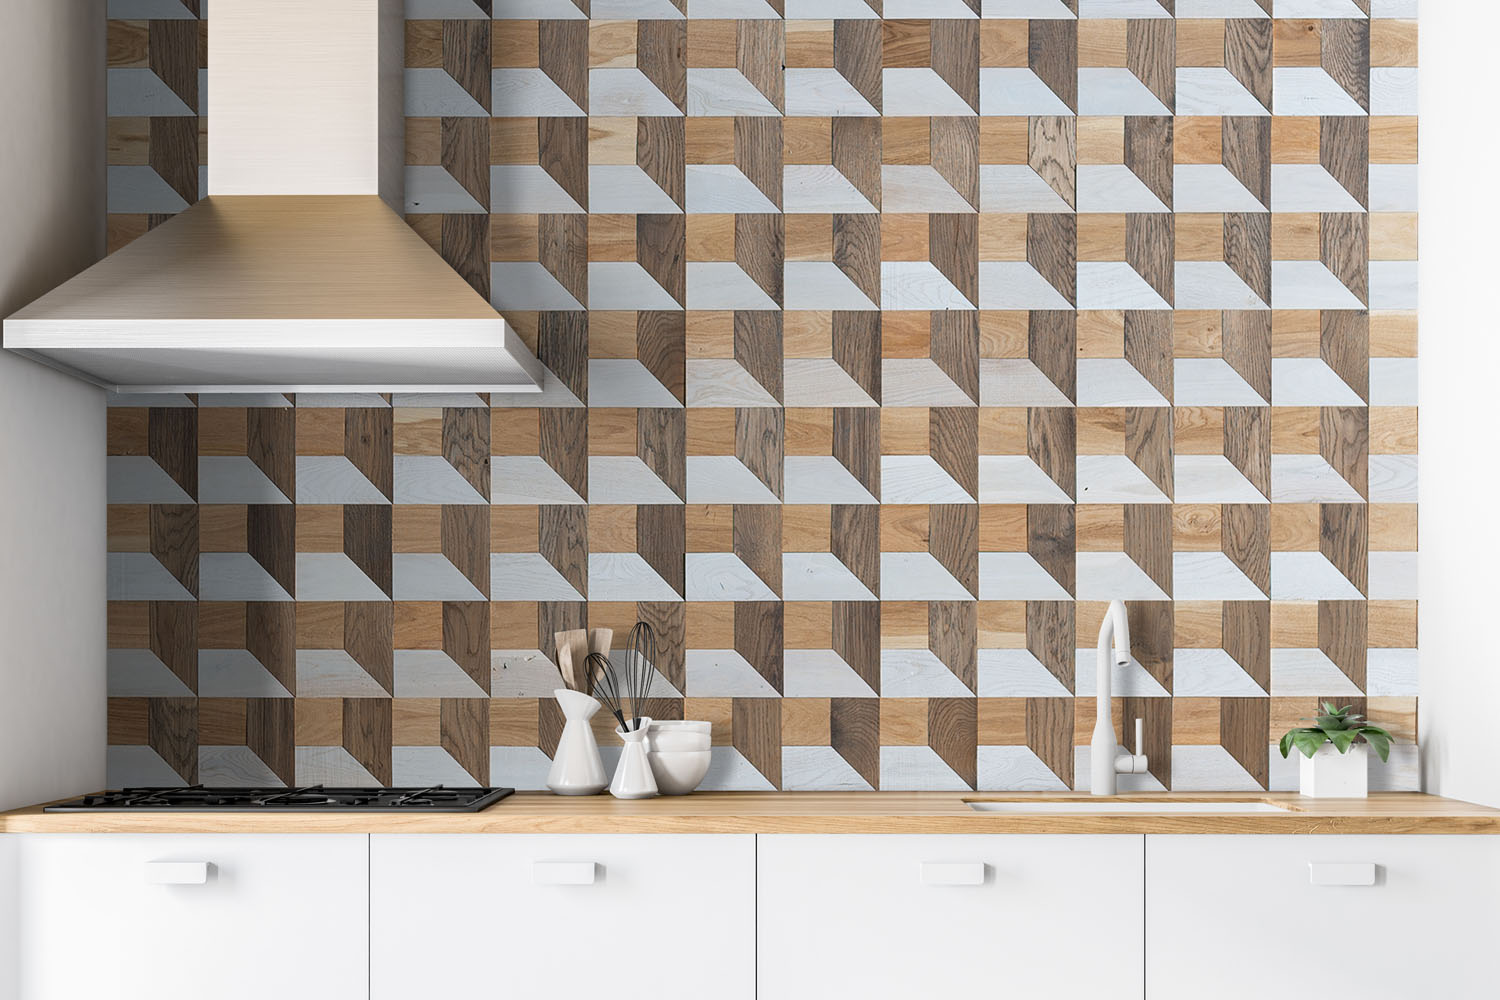 Retro wall panel in kitchen interior